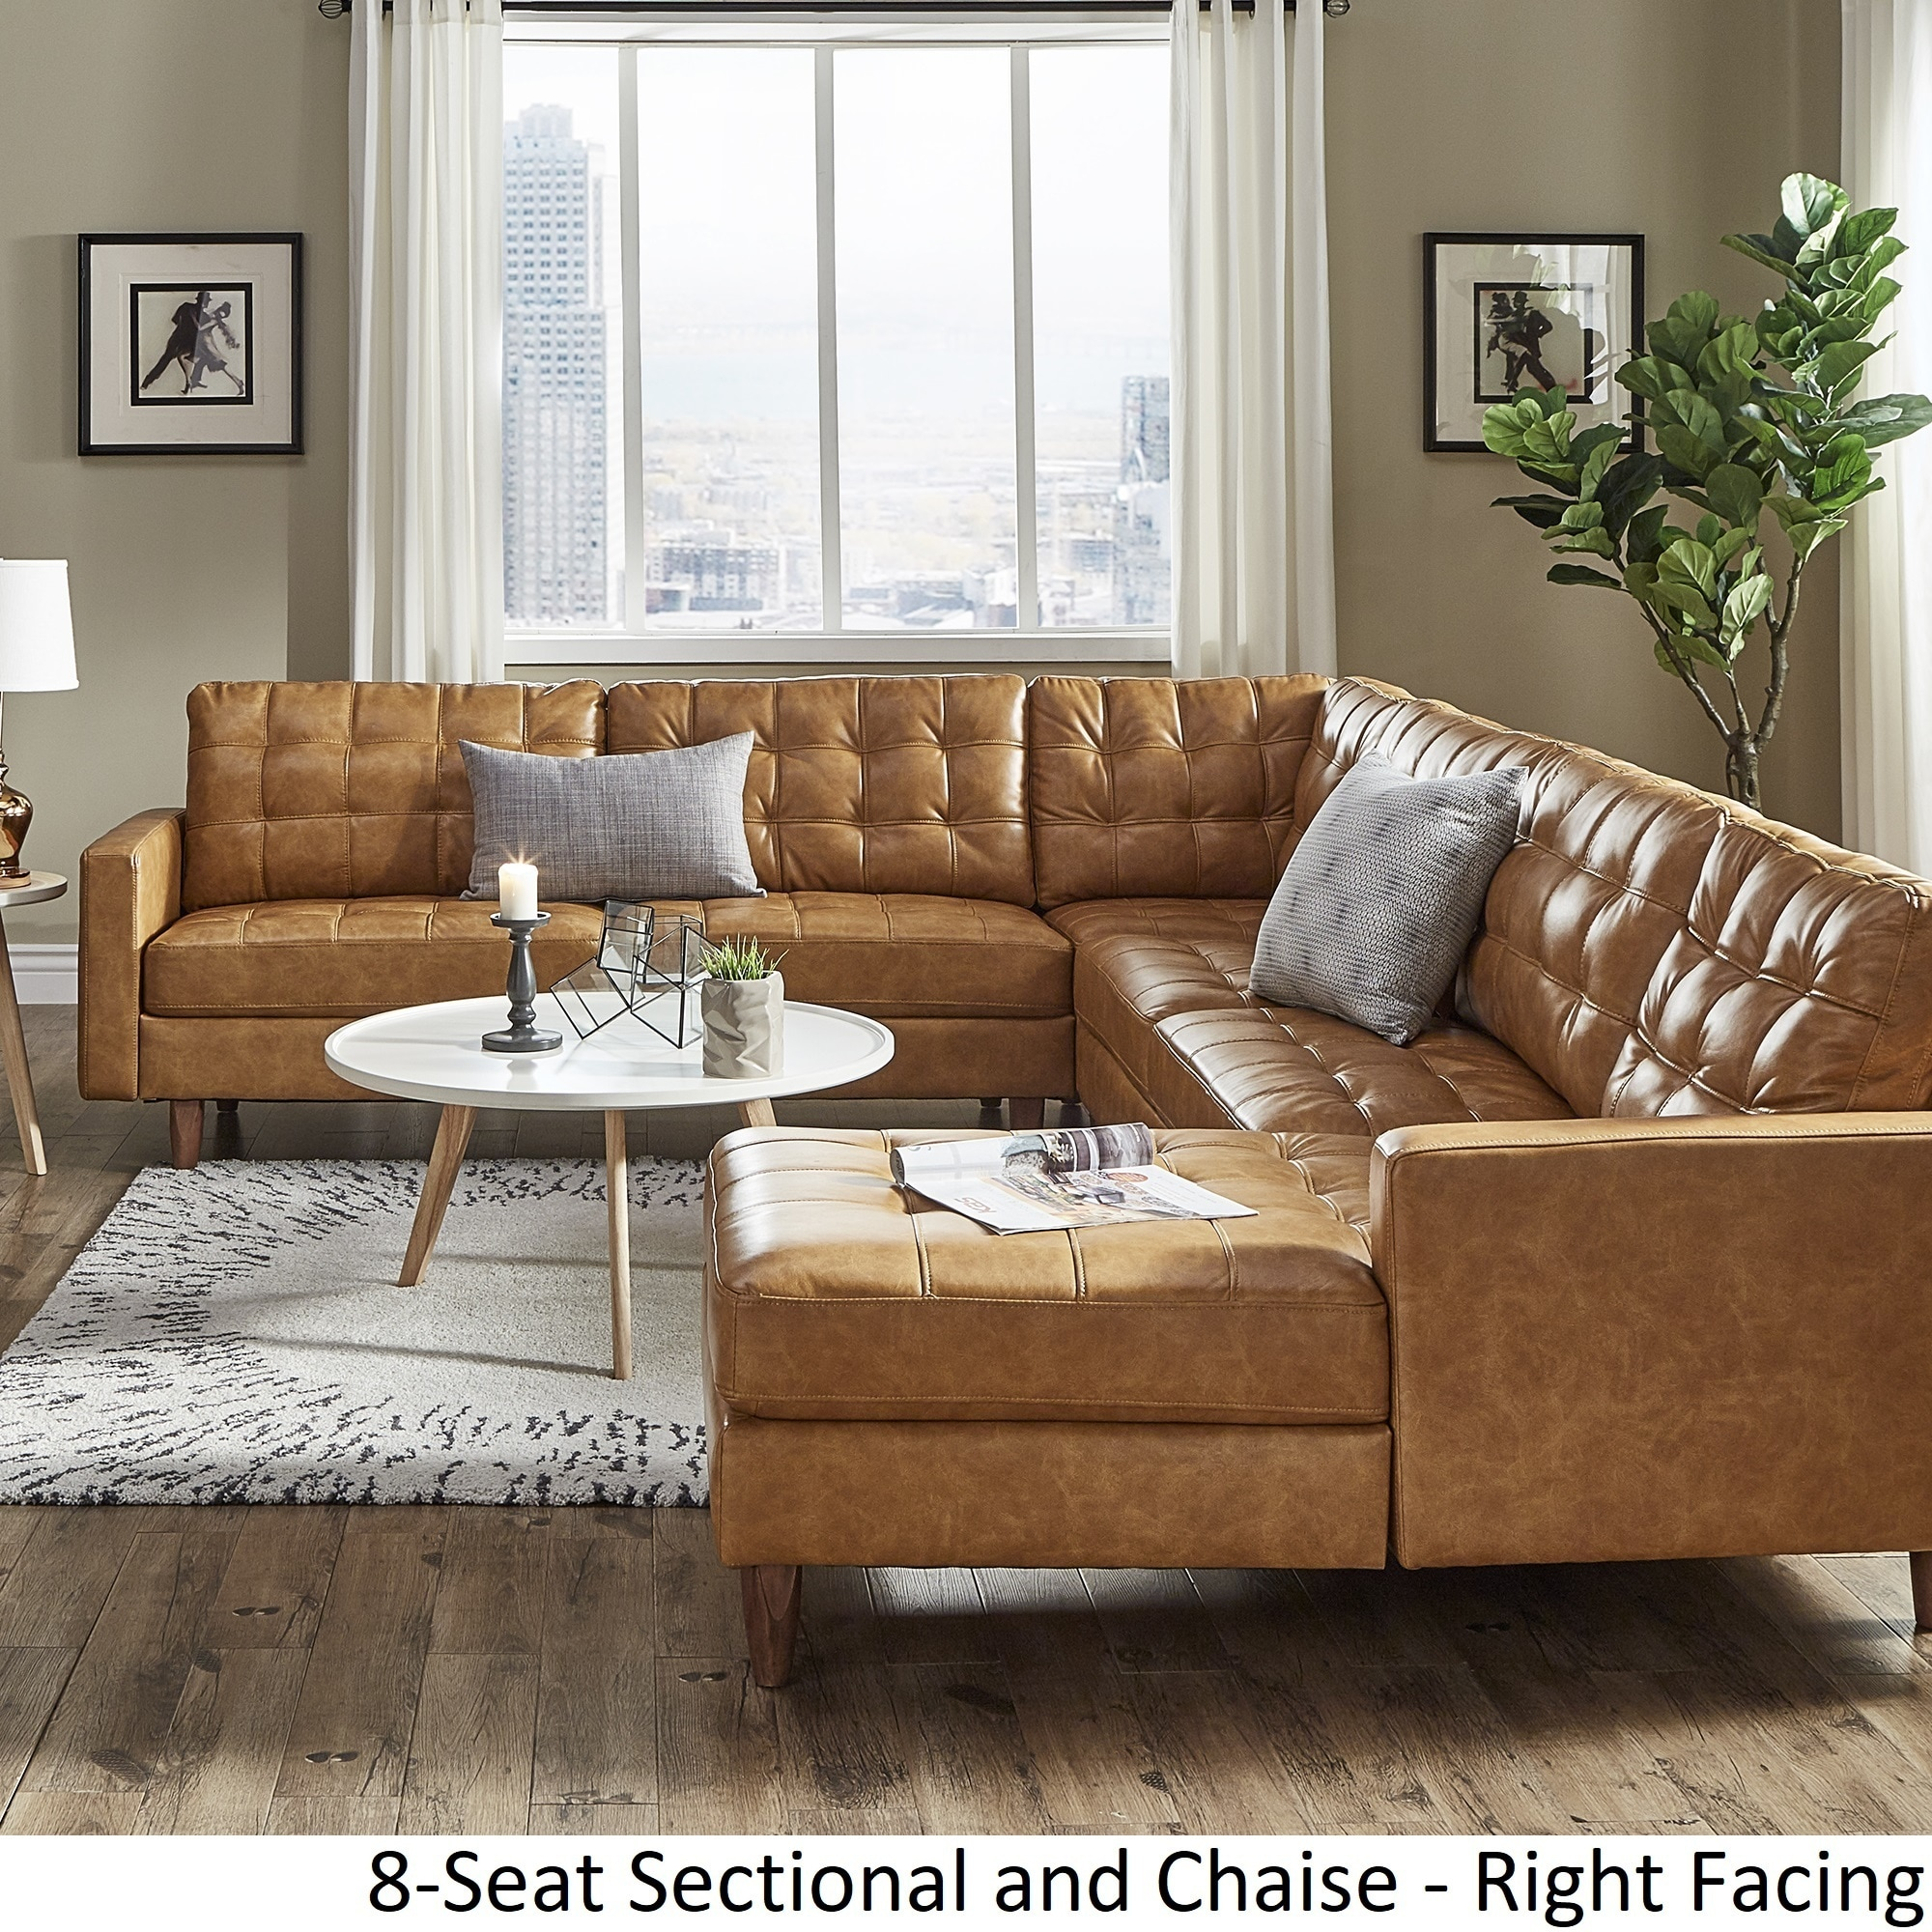 Odin Caramel Leather Gel L-Shape Sectional with Chaise by iNSPIRE Q Modern  - Free Shipping Today - Overstock.com - 25754214